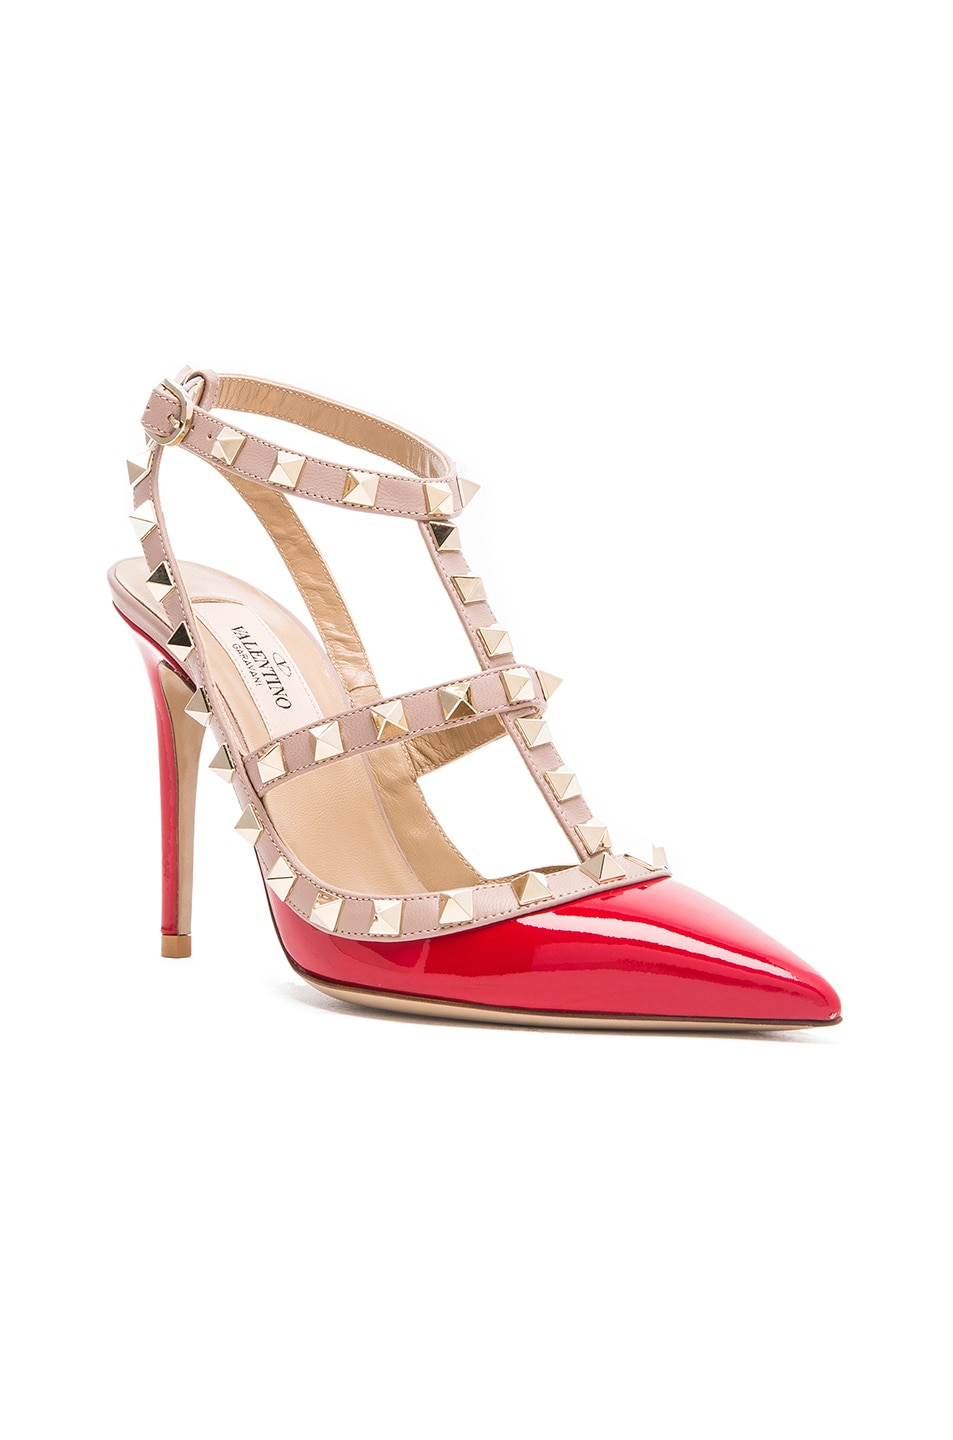 Image 2 of Valentino Rockstud Patent Leather Slingbacks T.100 in Rosso